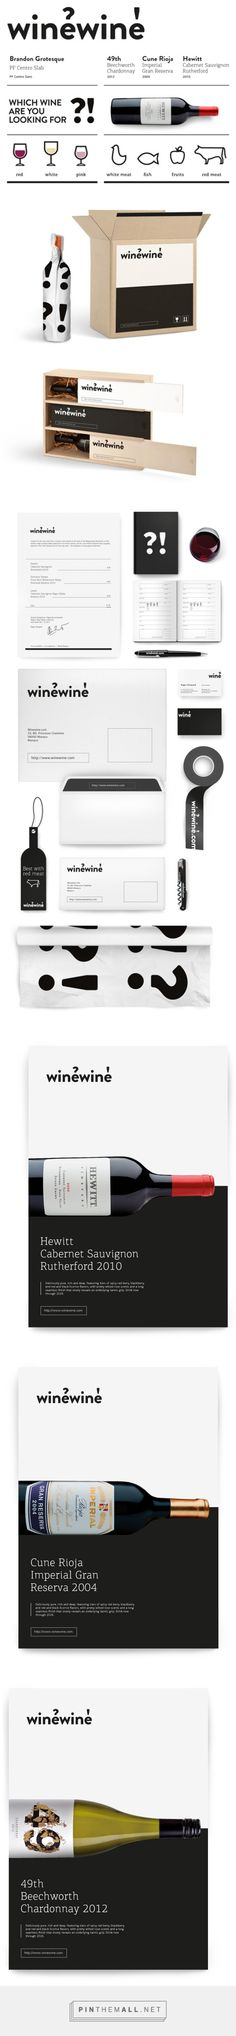 winewine Art direction: Marcin Wolny  Design: Julek Wierzchowski, Tomek Jurecki curated by Packaging Diva PD. What a fun packaging branding concept.